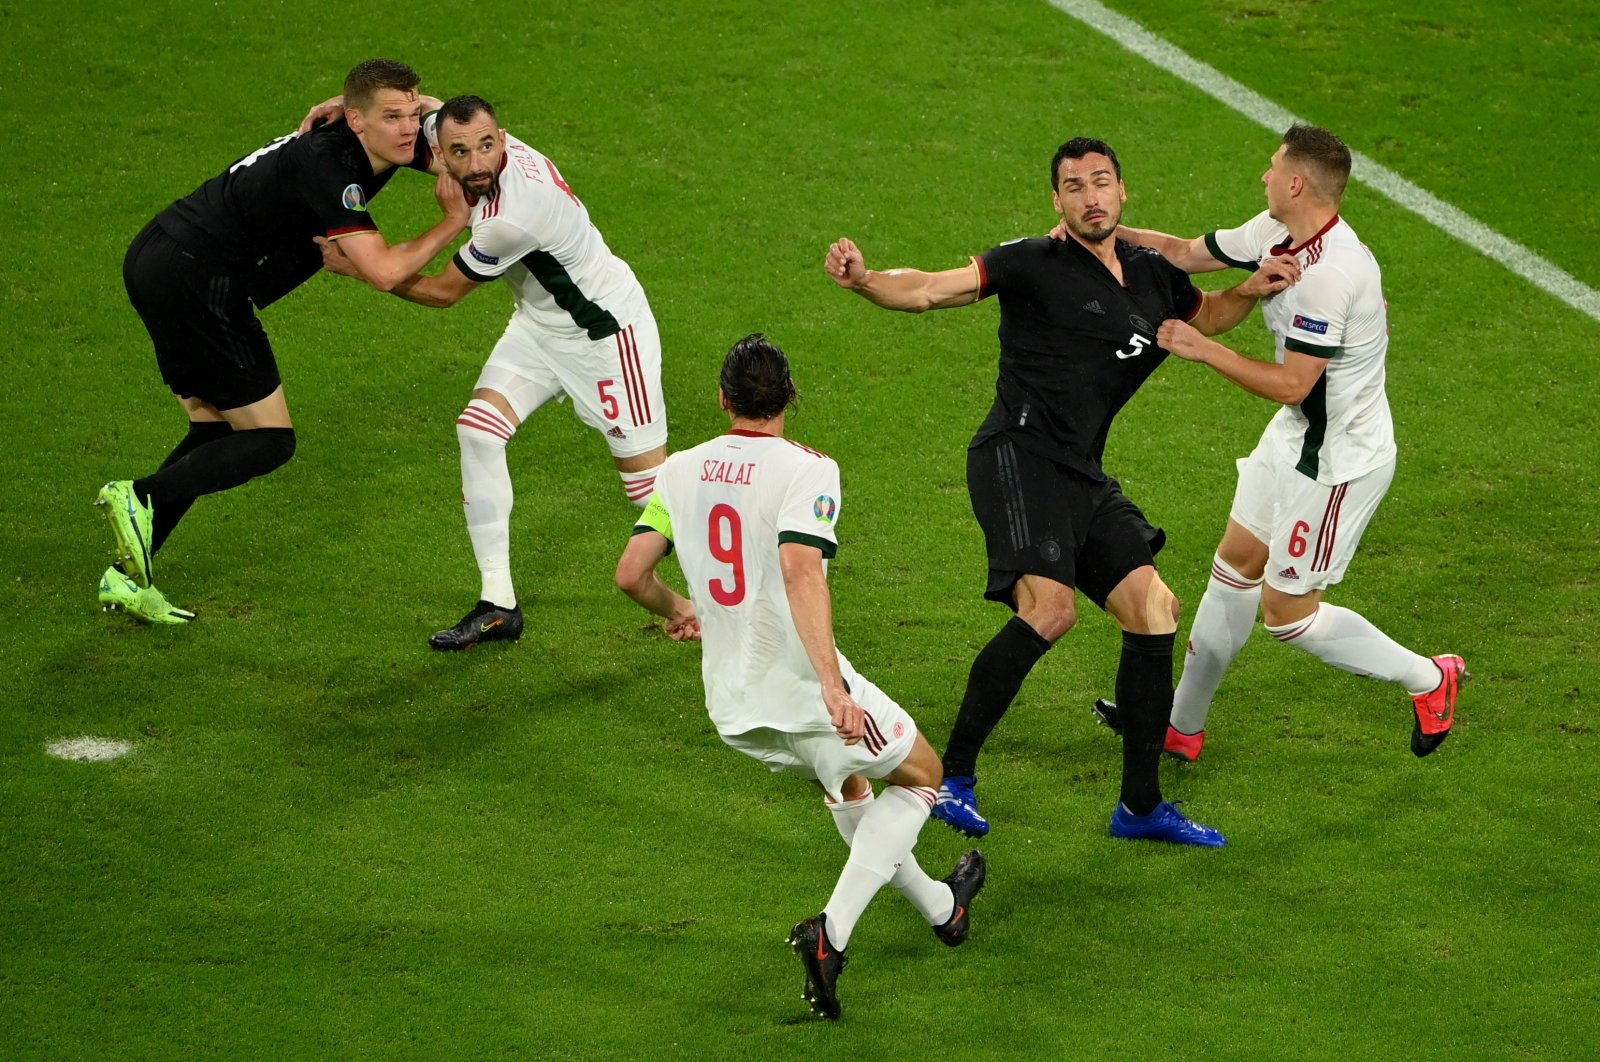 German and Hungarian footballers in action during their Euro 2020 Group F match in Munich, Germany, June 23, 2021. (Reuters Photo)